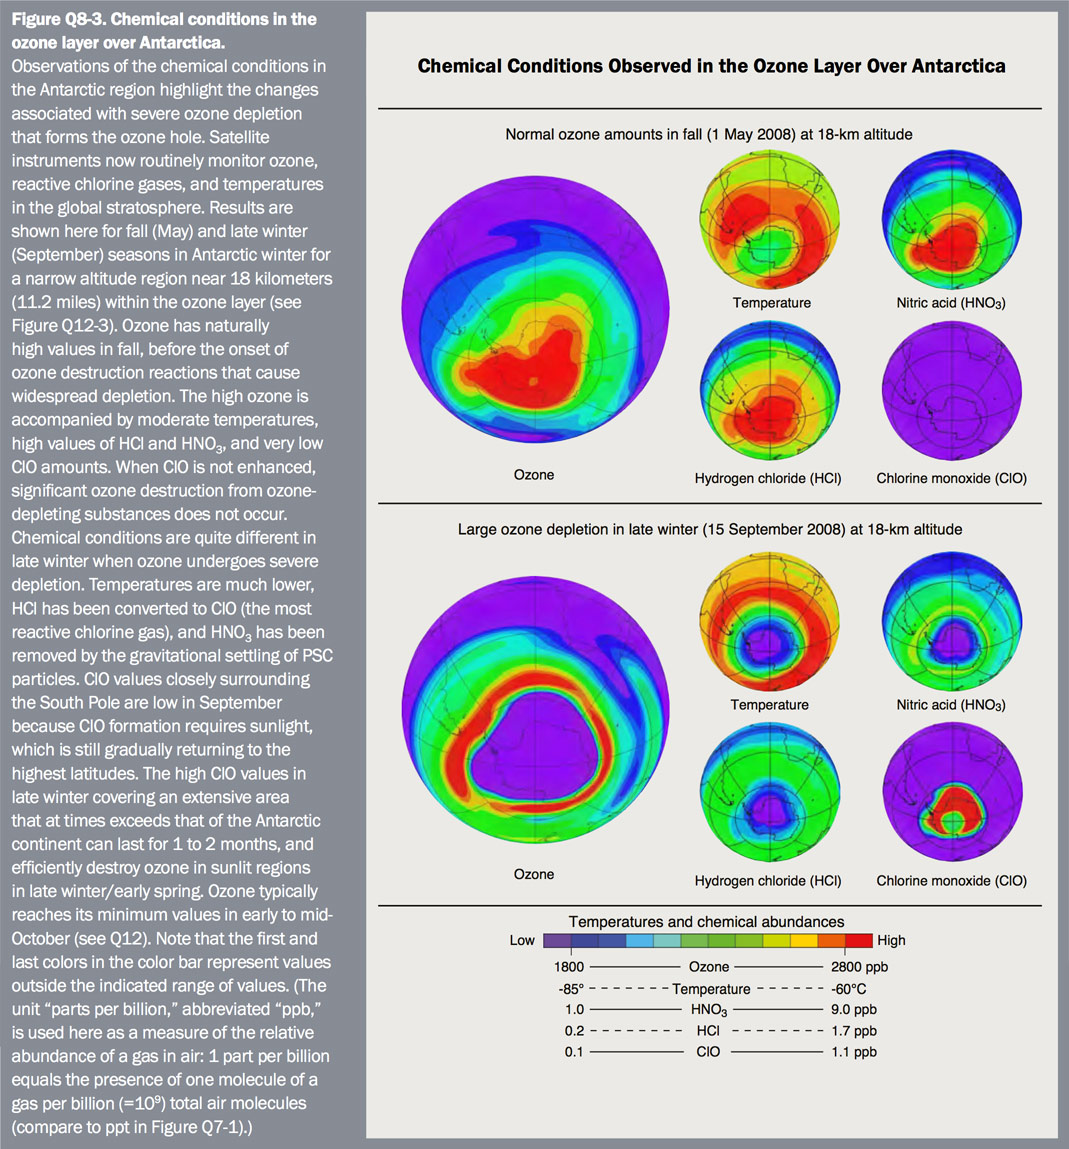 Figure Q8-3 Chemical conditions in the ozone layer over Antarctica